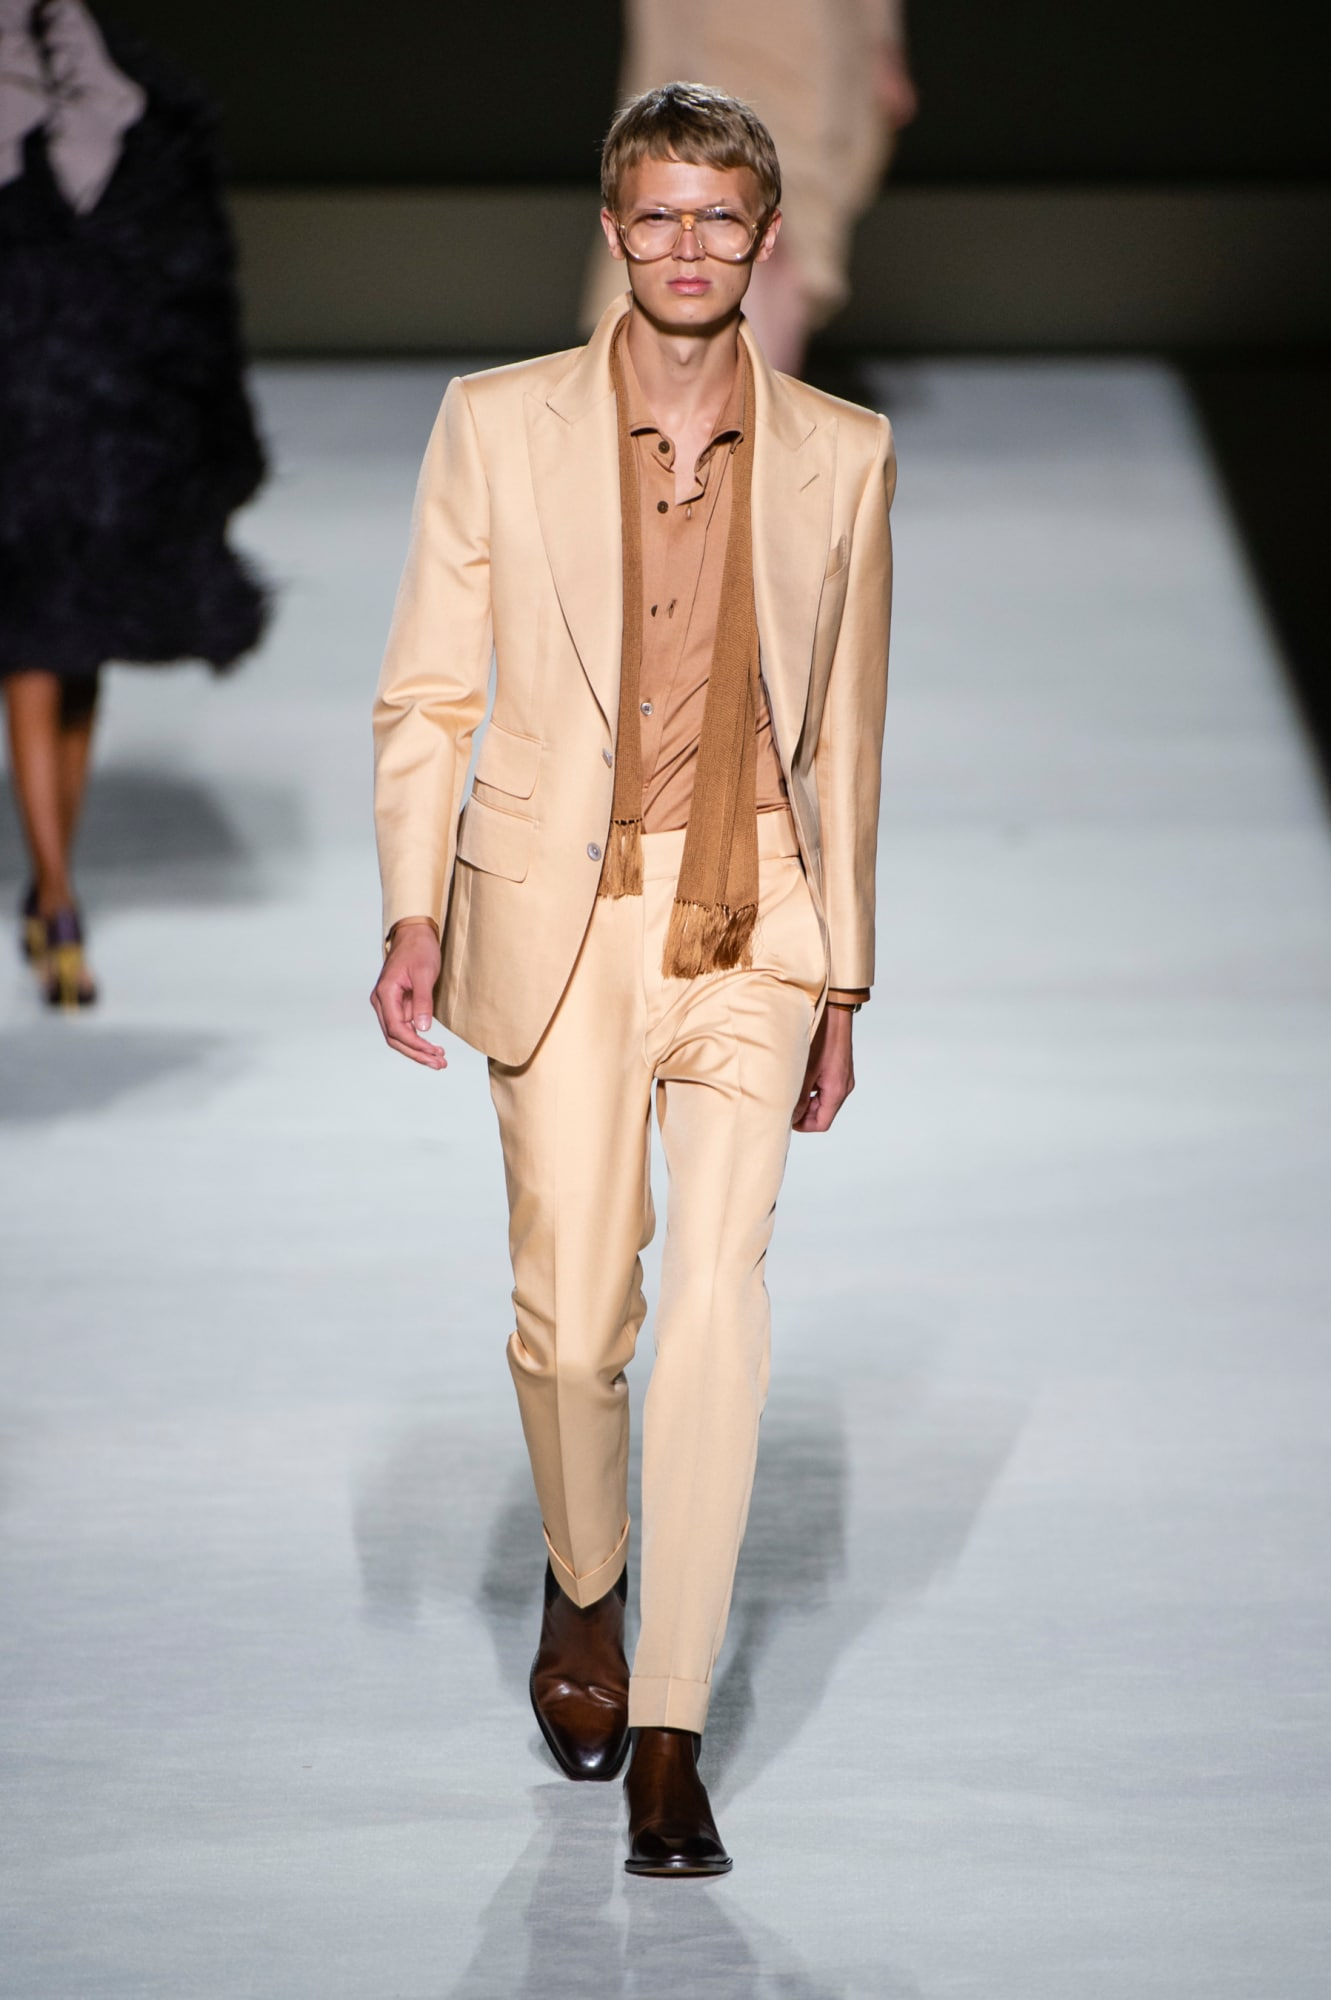 Tom Ford spring 2019 collection, men's earth tone suit, scarf and button down